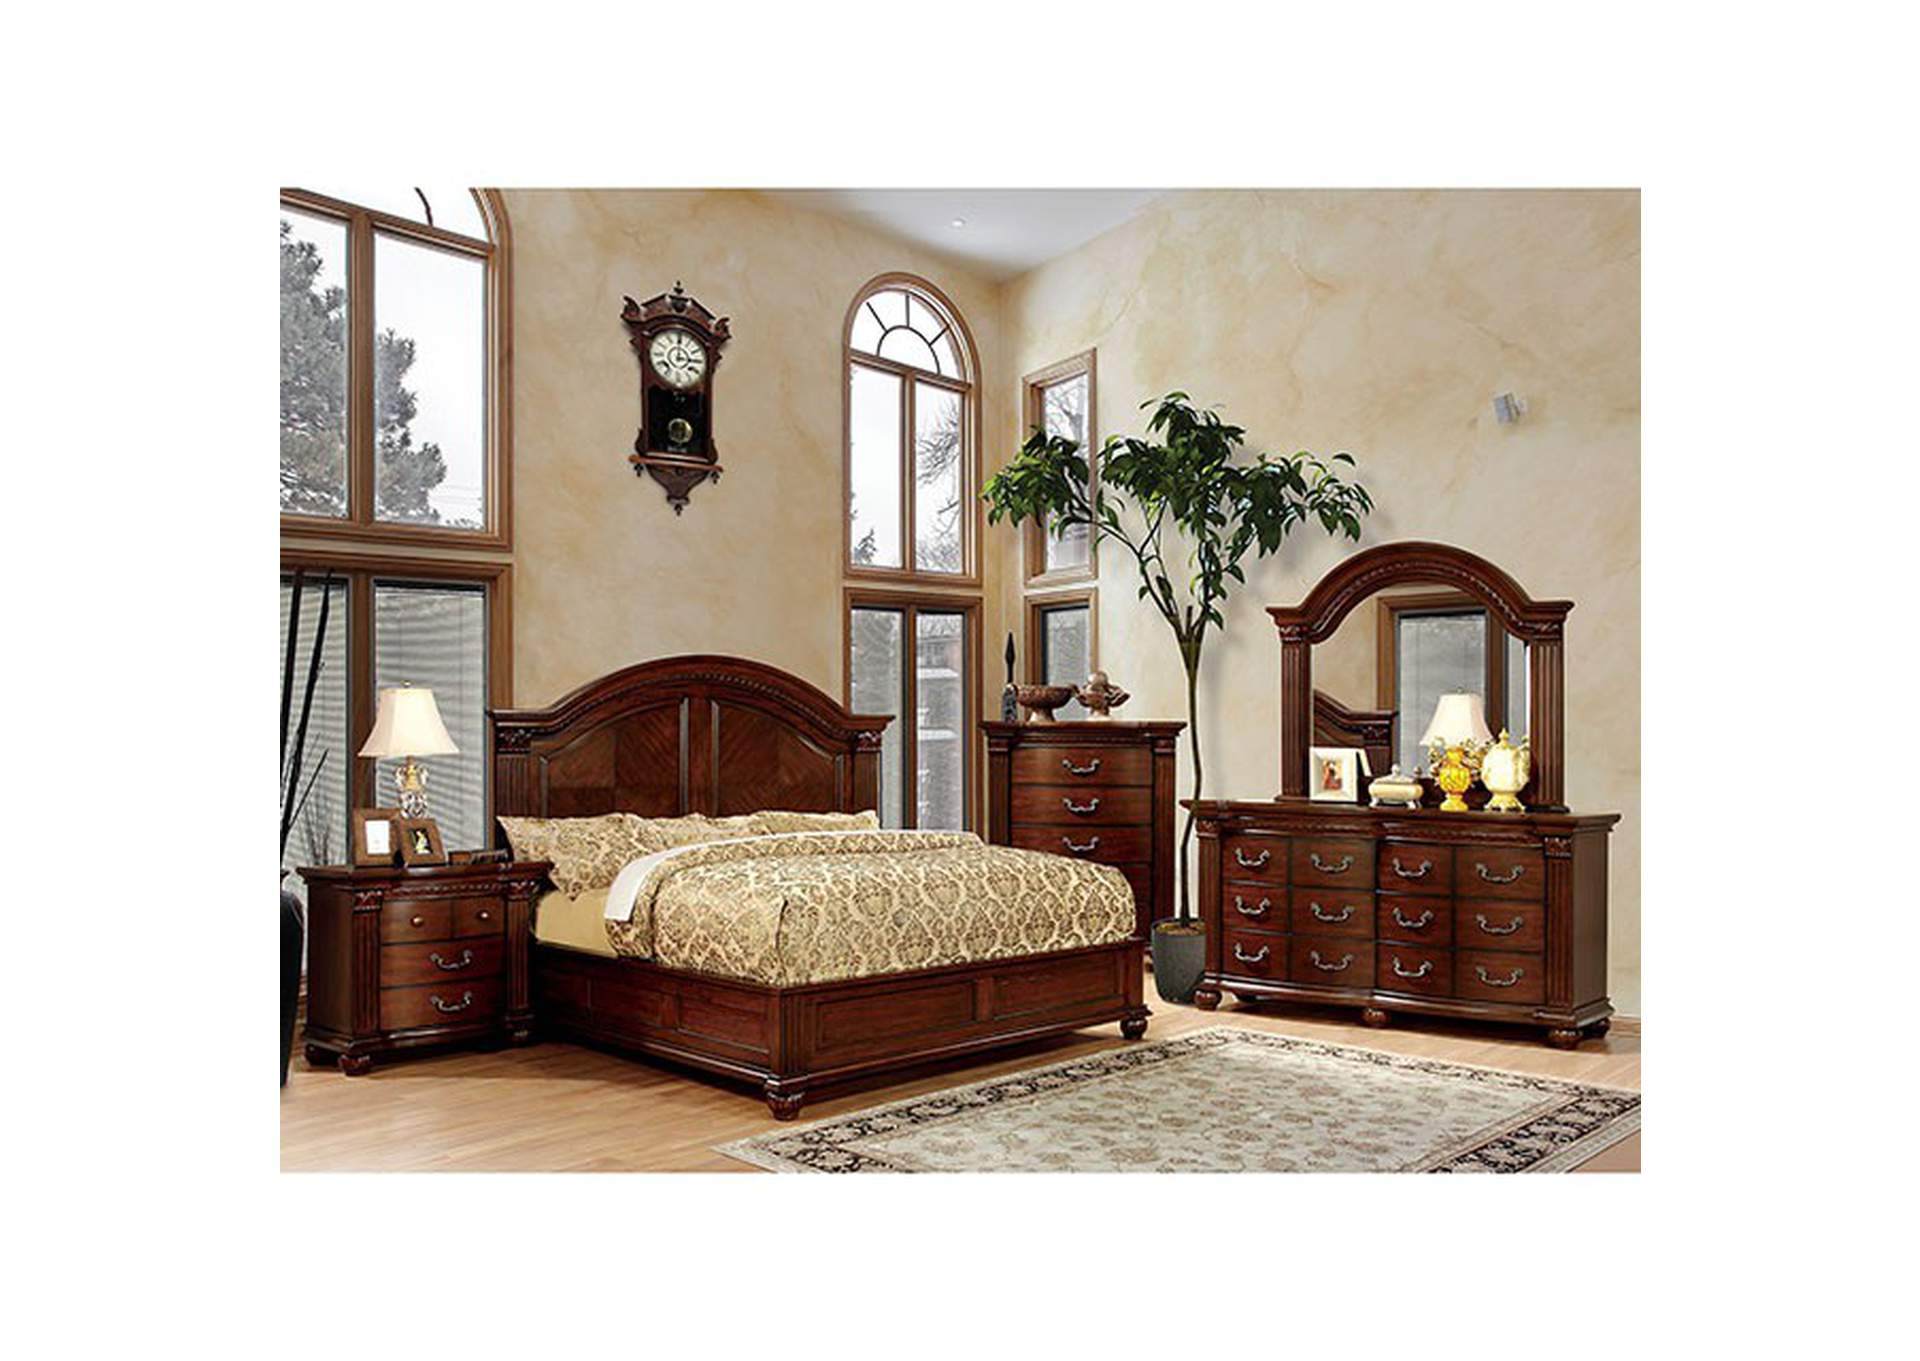 Grandom Cherry Queen Platform Bed,Furniture of America